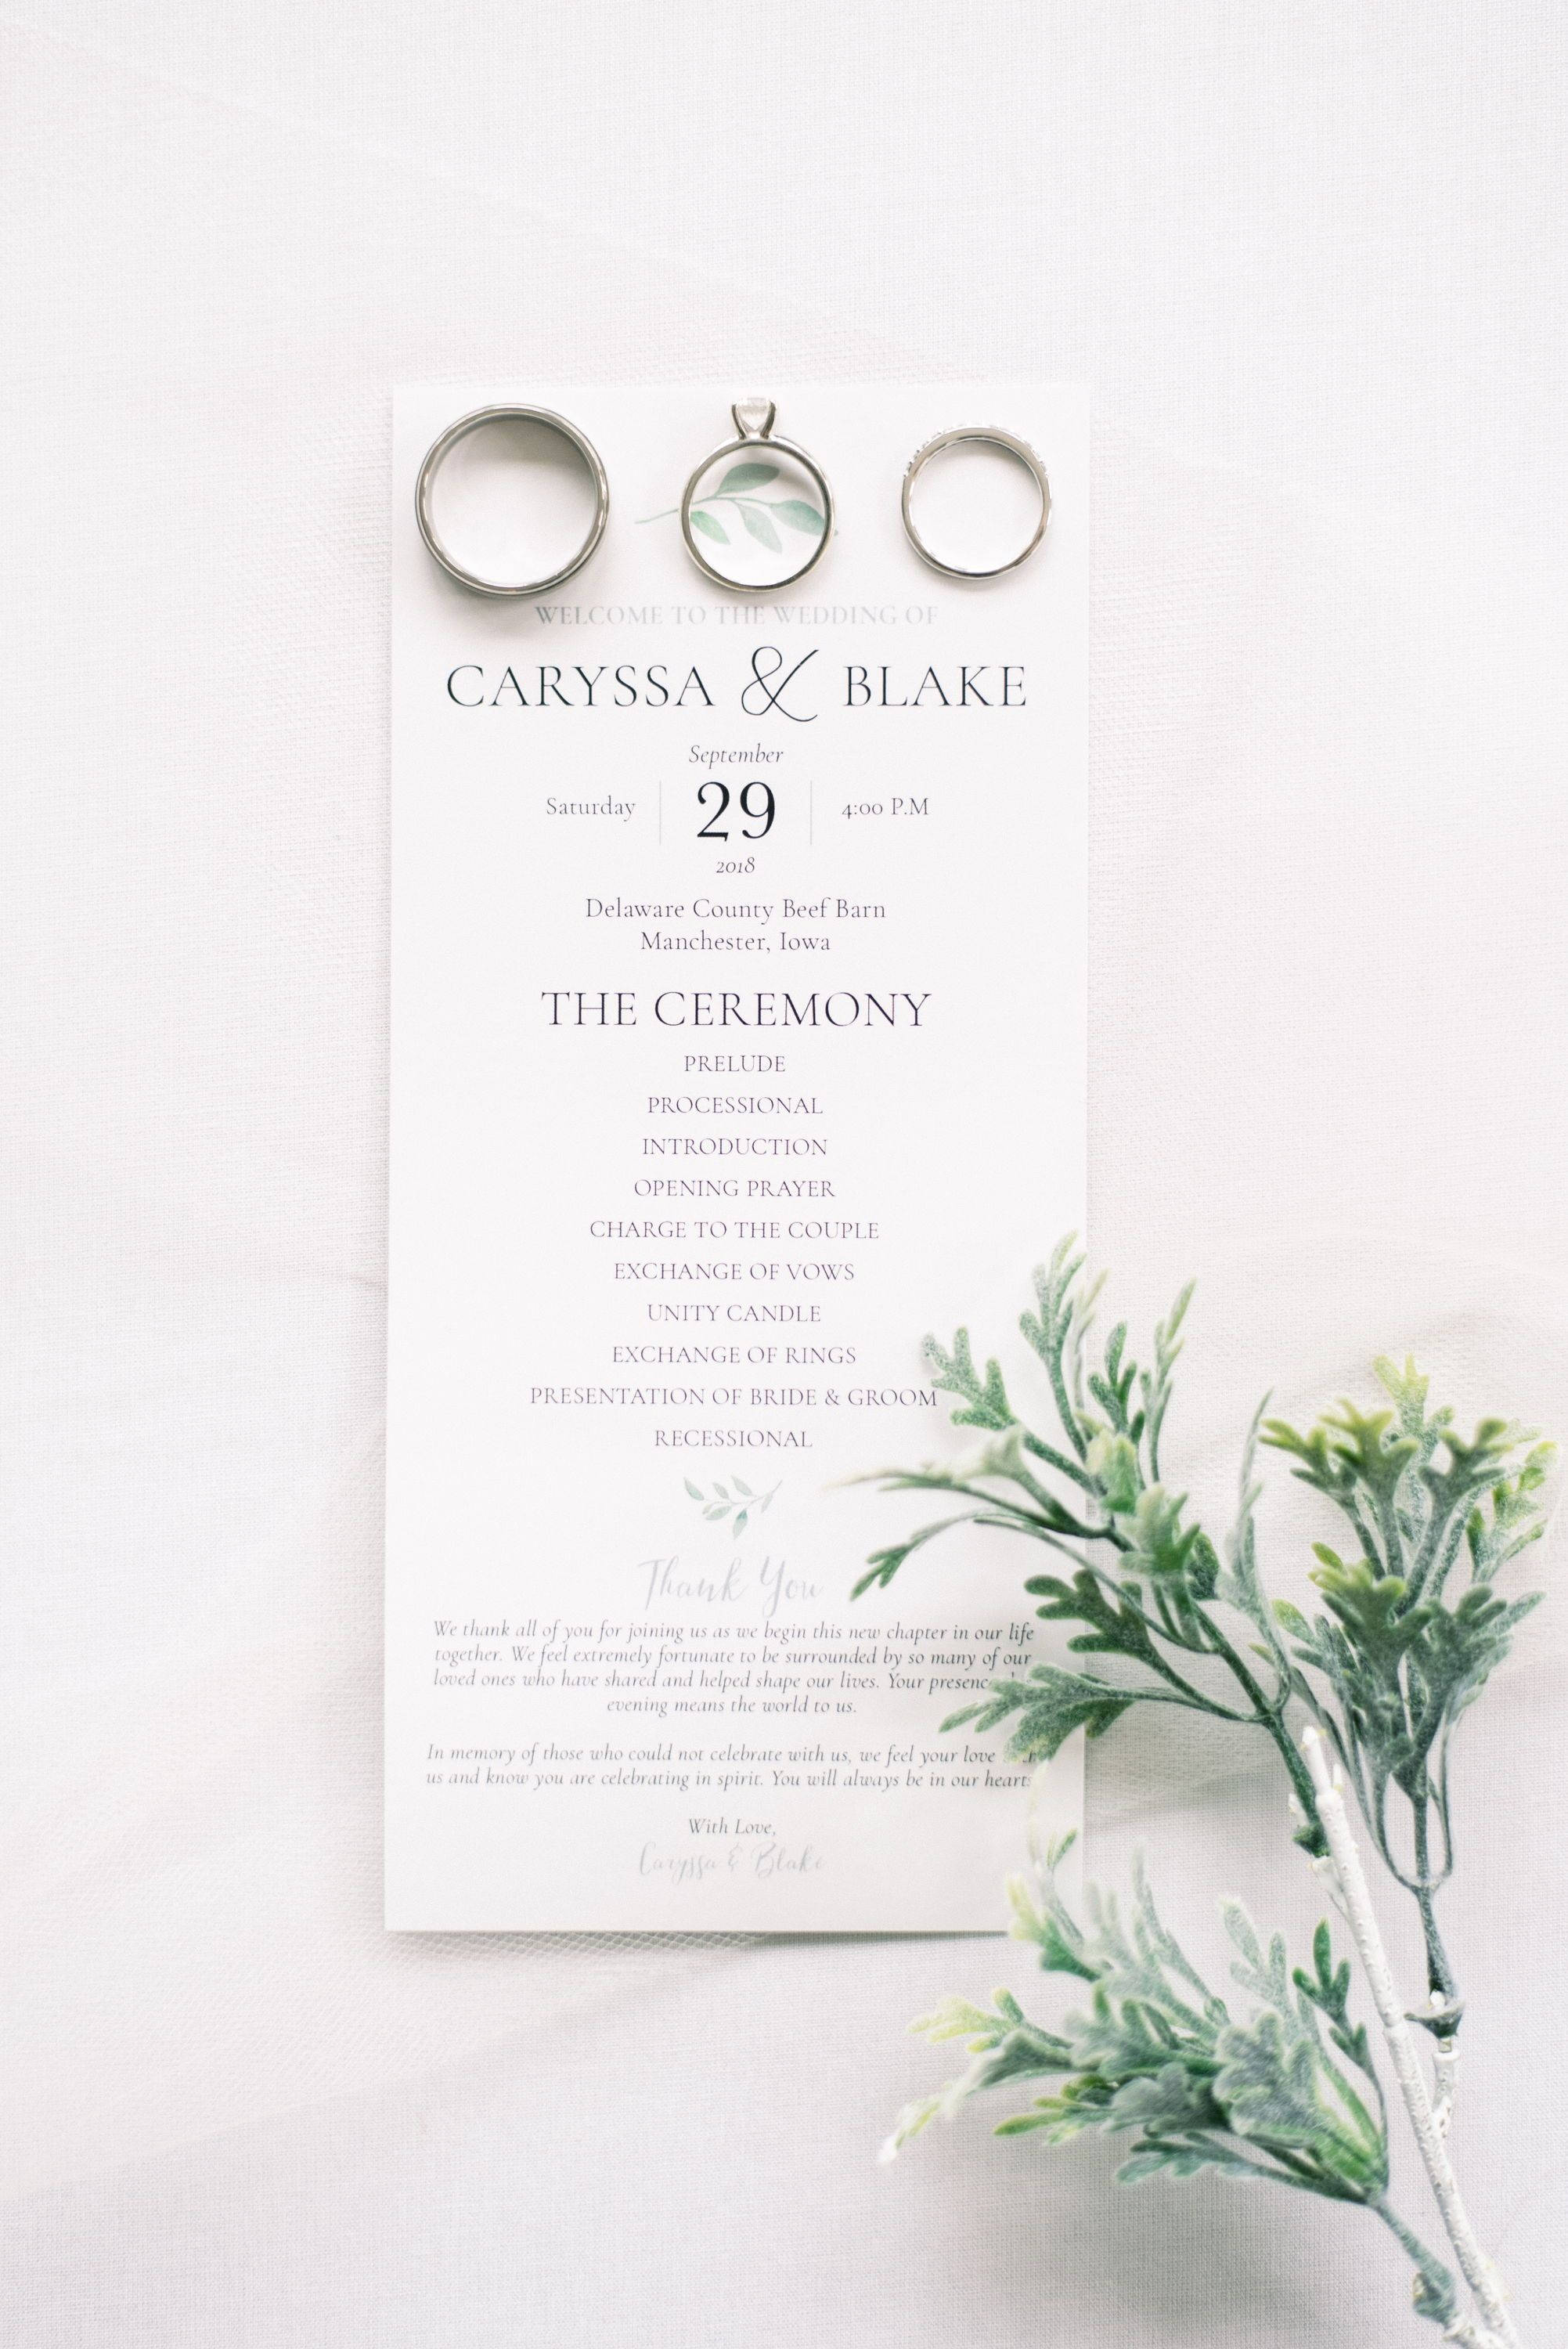 O'Connell Wedding   Professional wedding photography ...